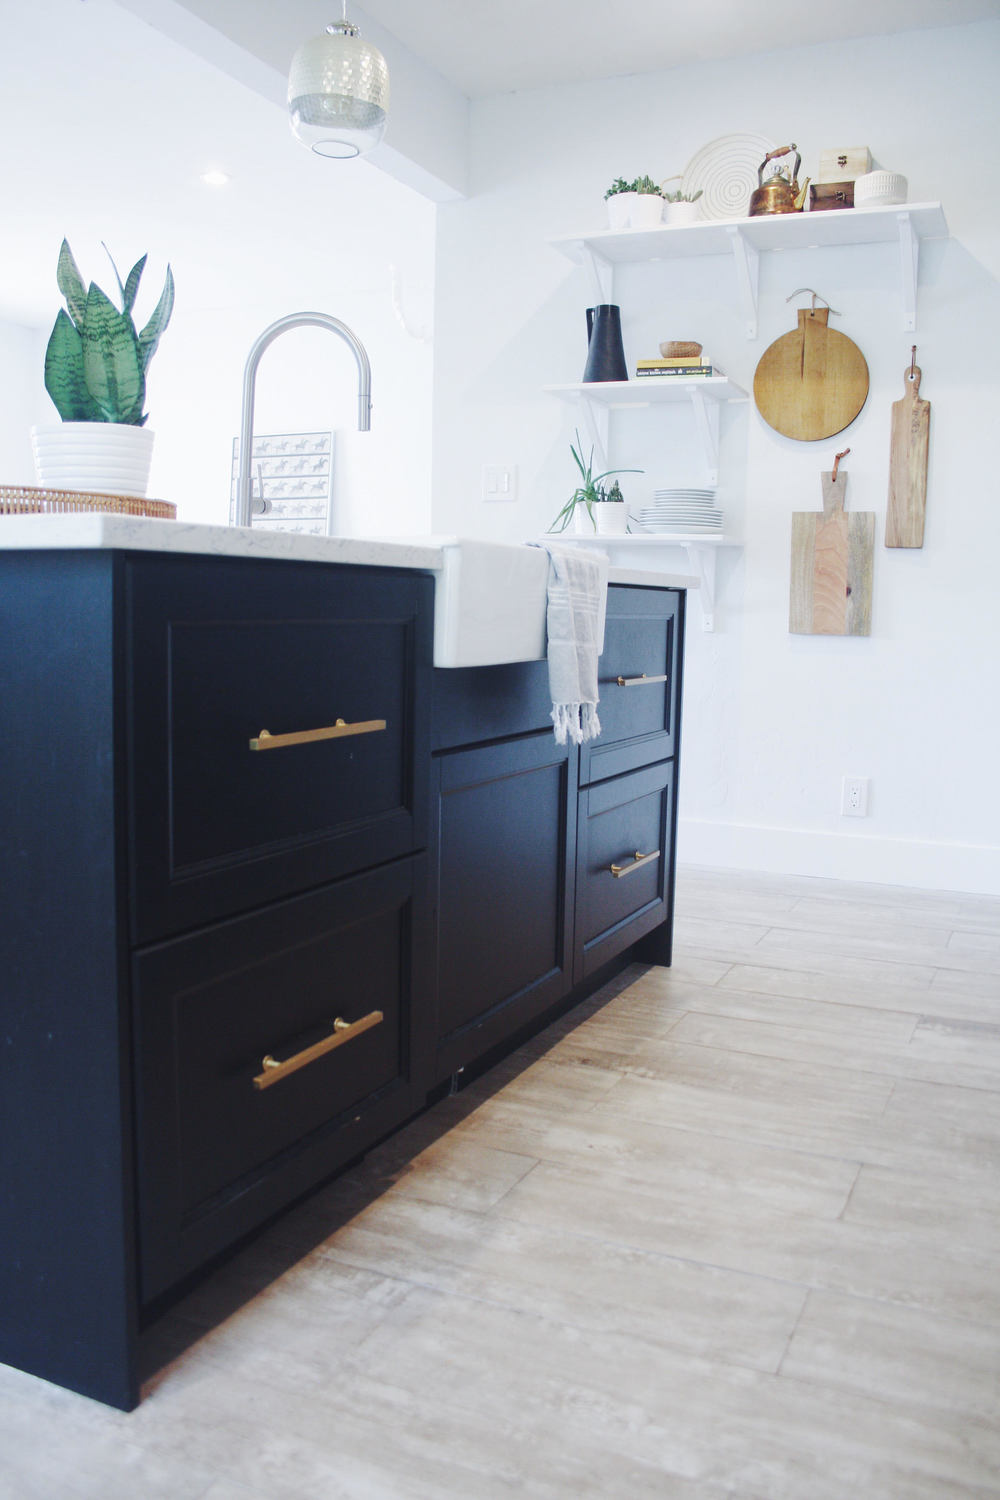 project stay brassy - north miami kitchen - the habitat collective